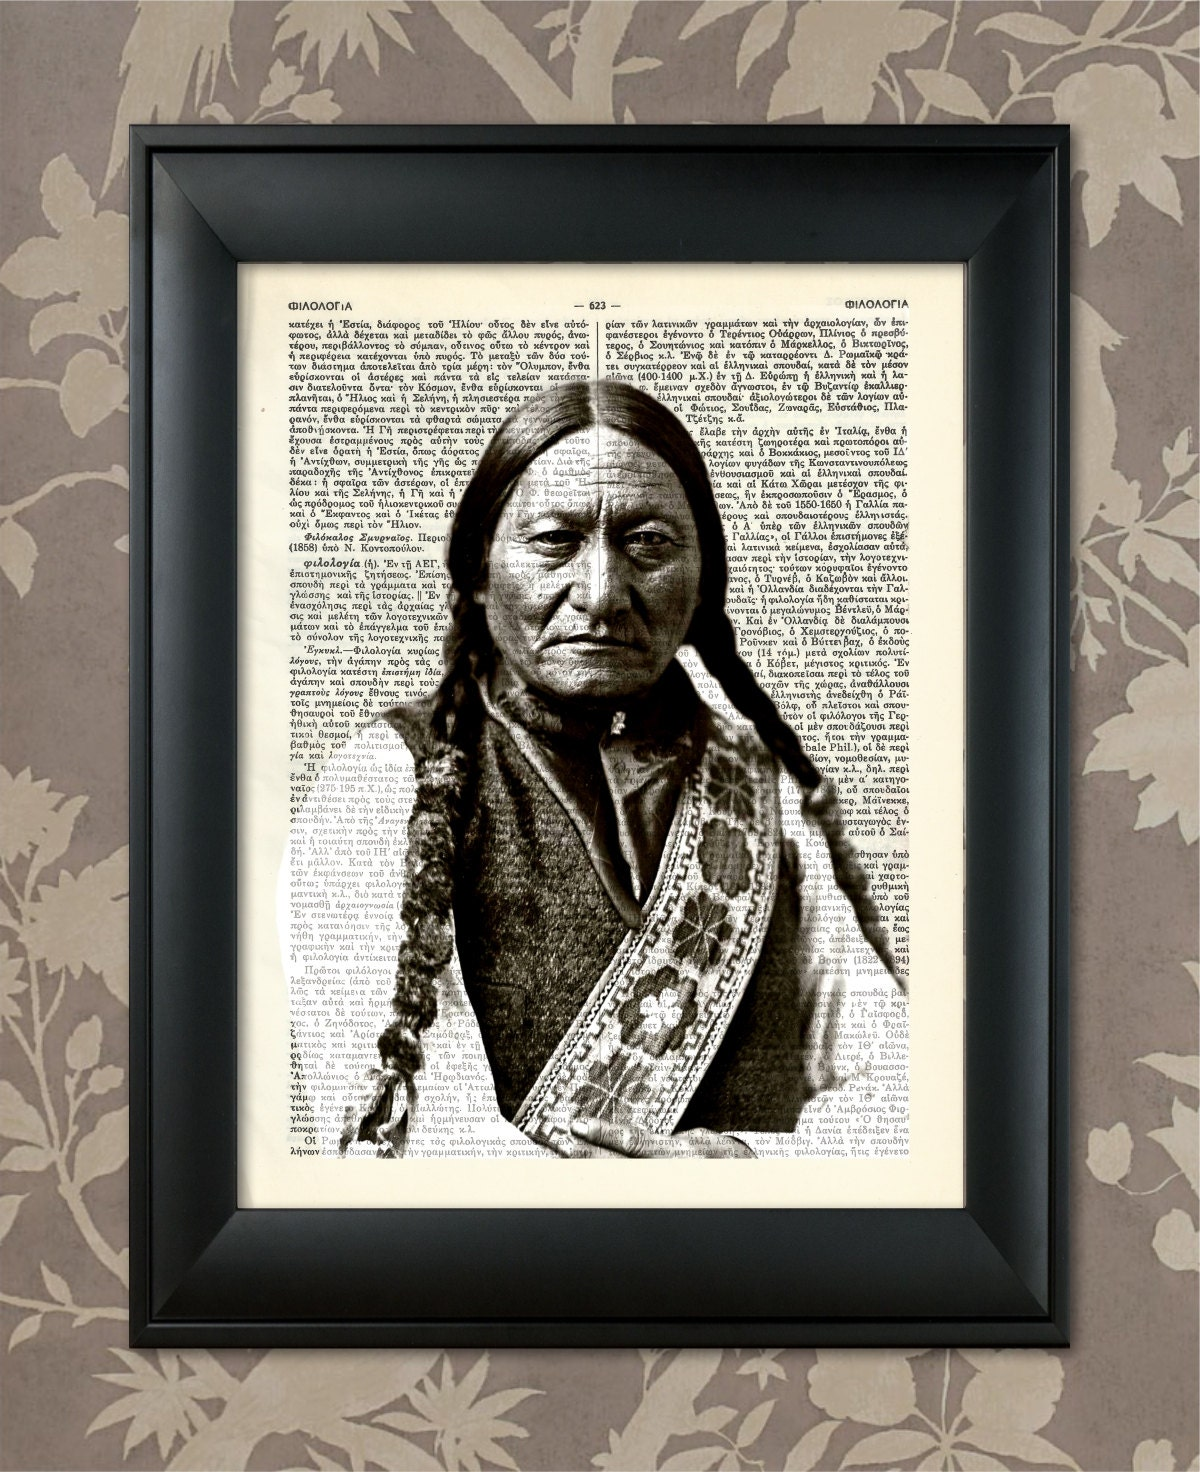 sitting bull and the paradox of lakota nationhood thesis My legacy also includes a stamp that was released in 1989, standing rock college renamed to sitting bull college in my honor, and a book titled sitting bull and the paradox of lakota nationhood other sets by this creator.